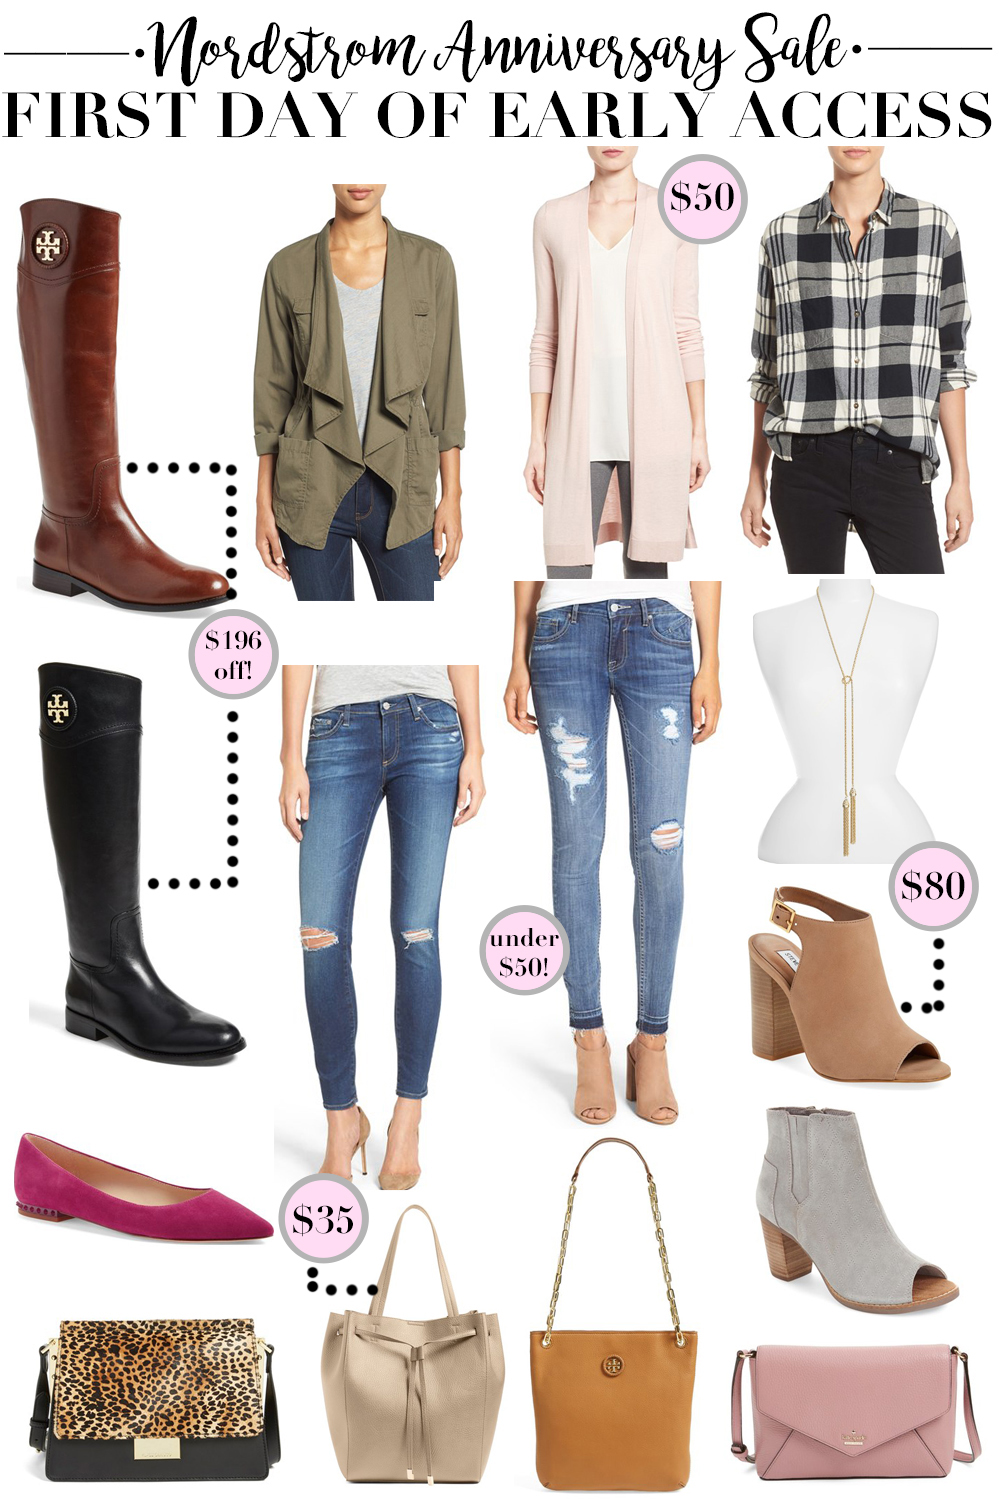 Nordstrom Anniversary Sale: First Day of Early Access